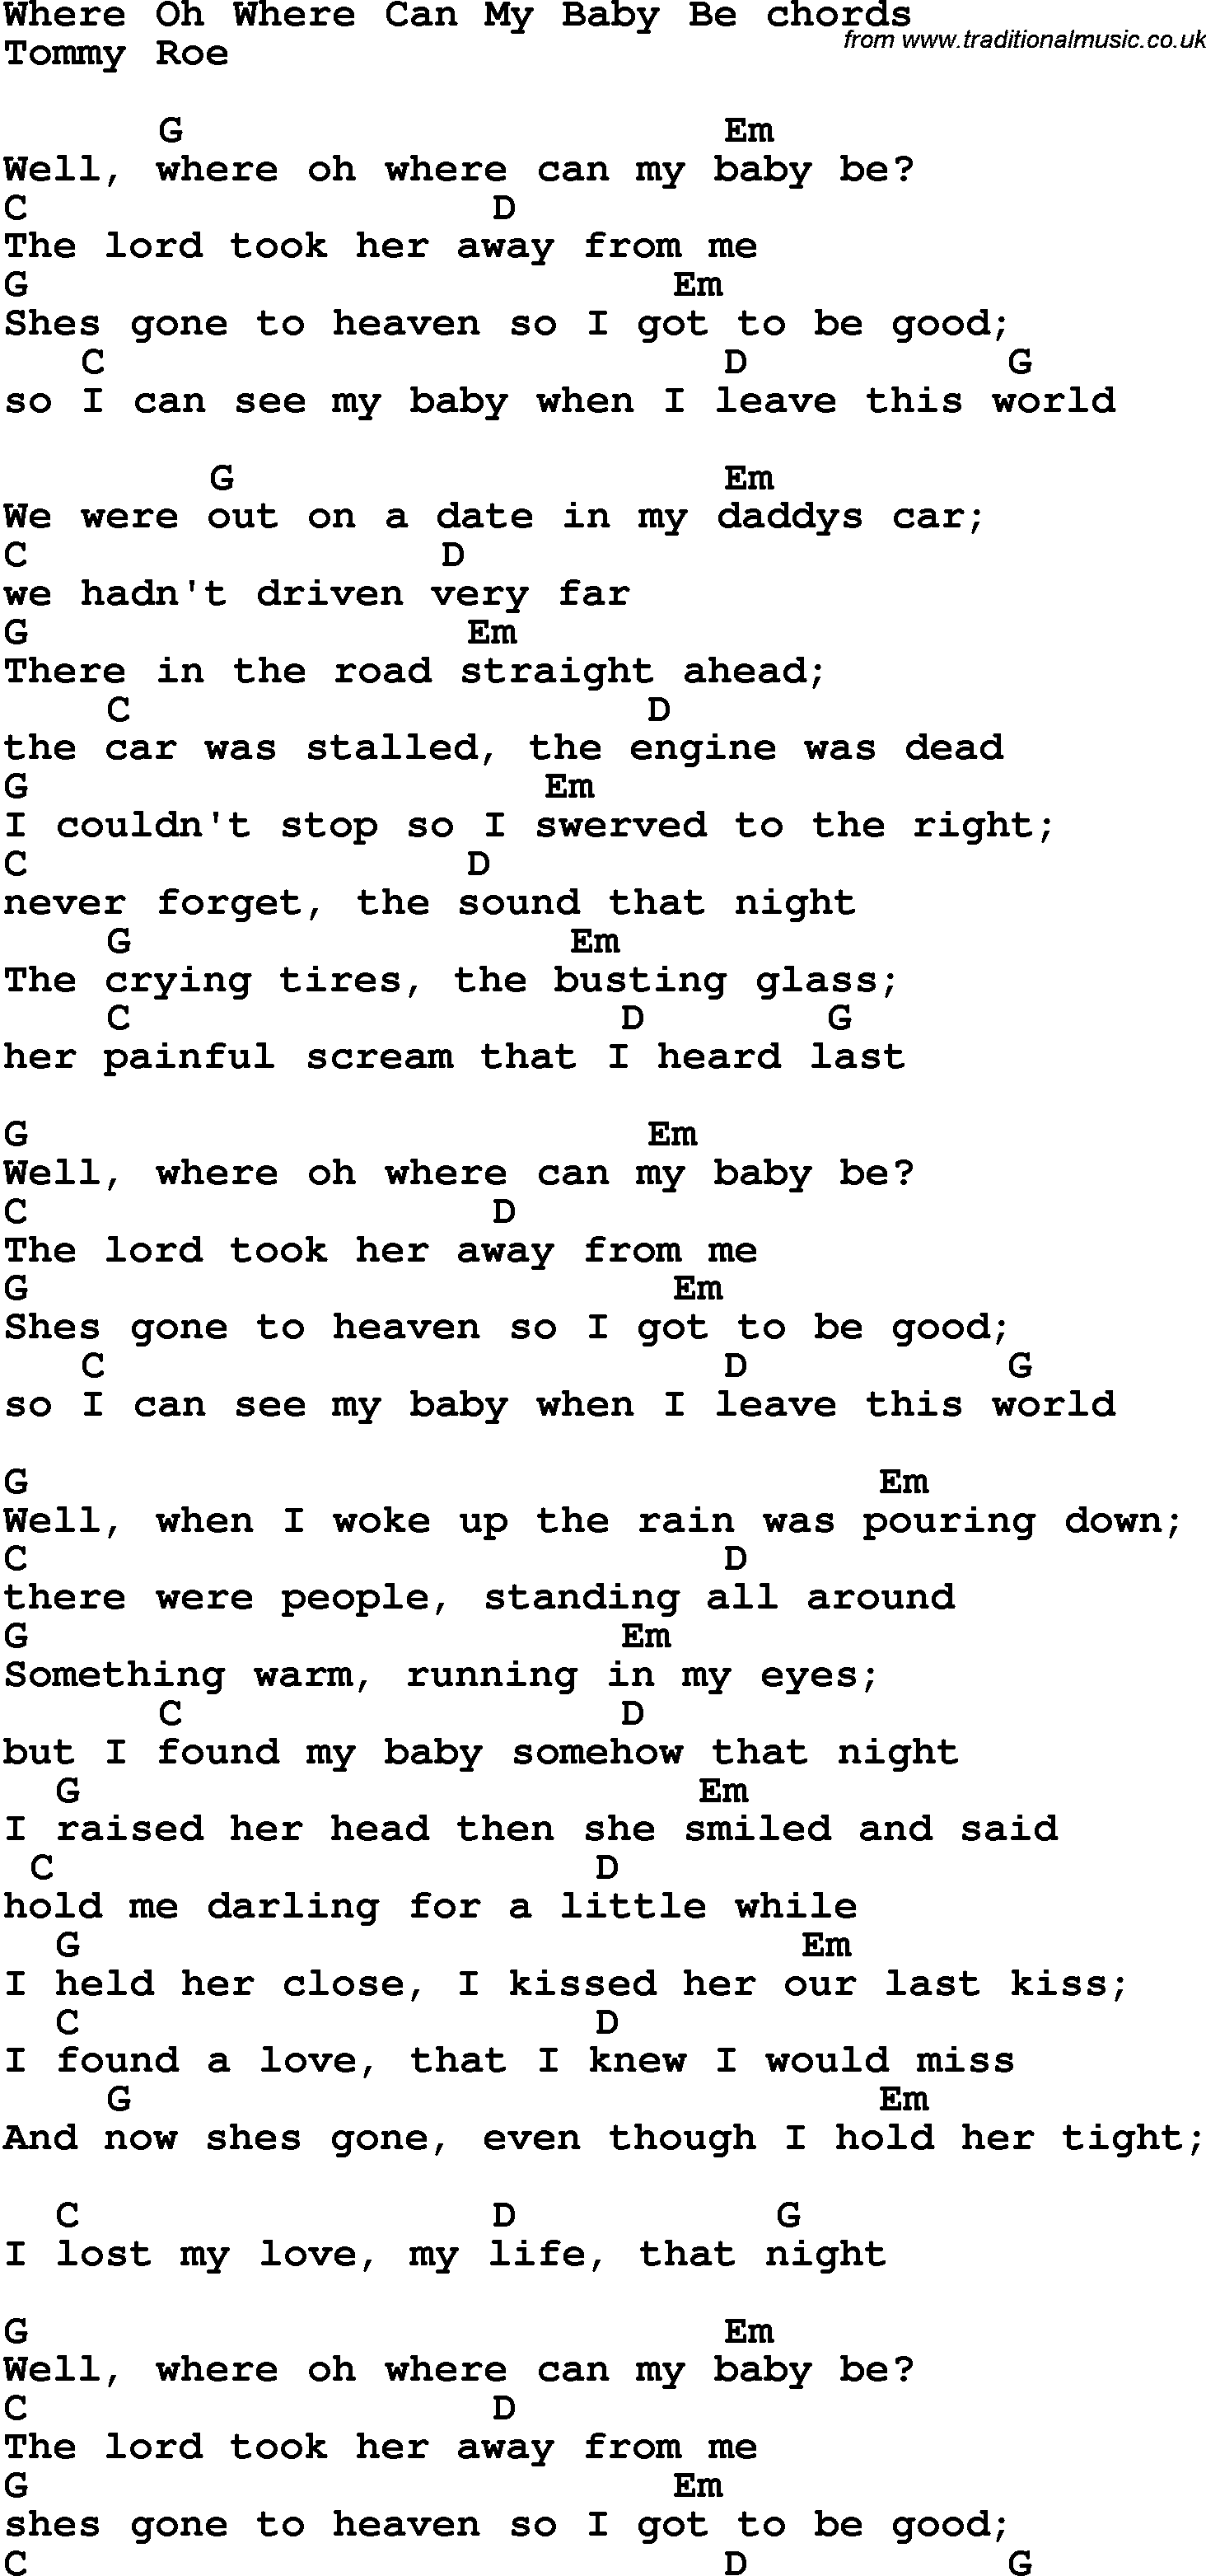 Song lyrics with guitar chords for Where Oh Where Can My Baby Be